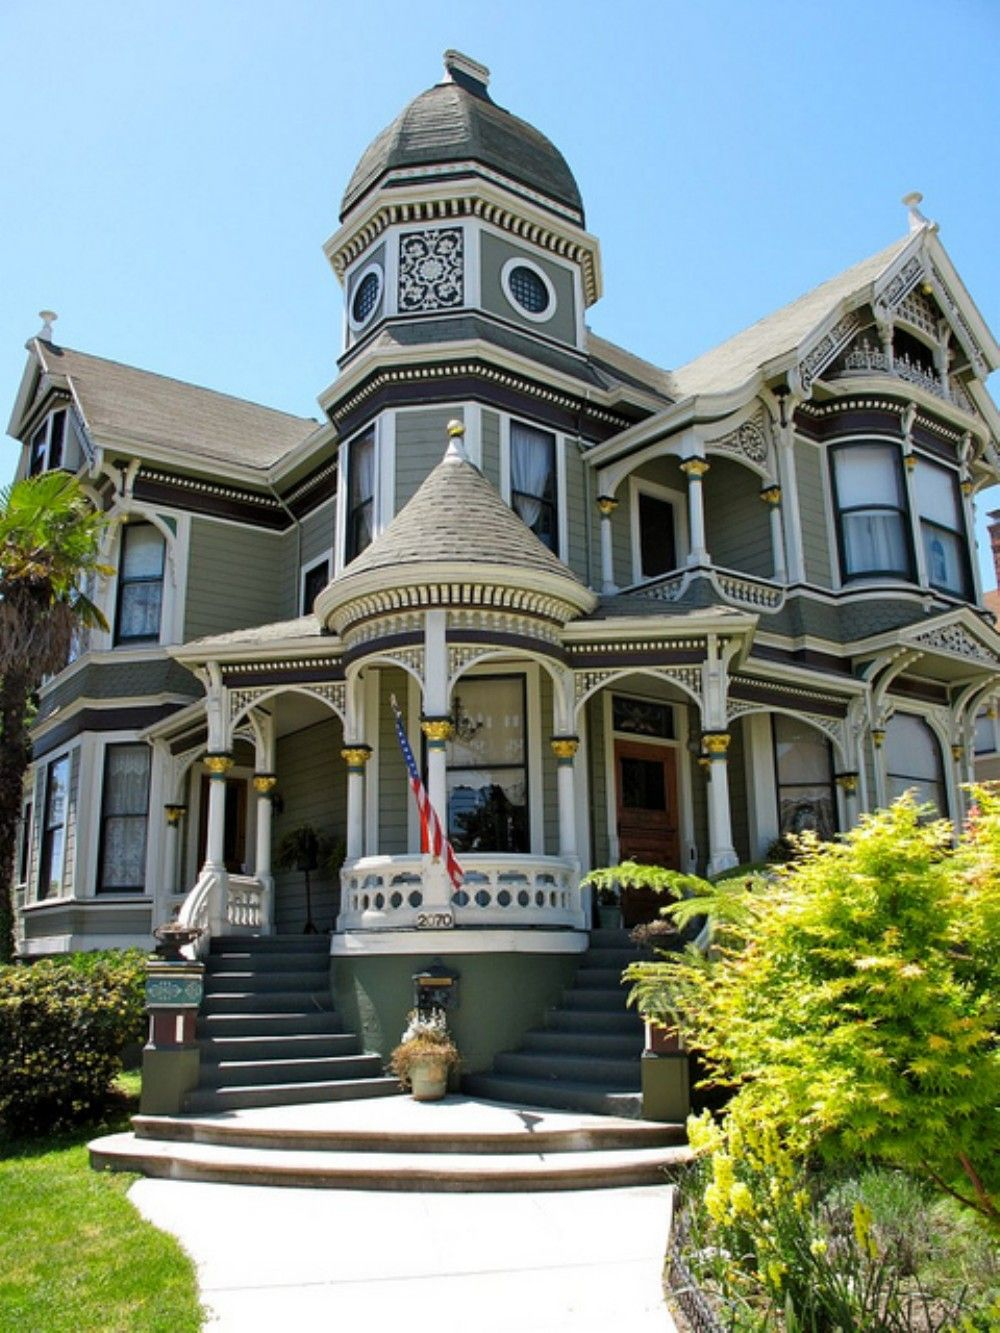 Breathtaking 103 Elegant Victorian Home Exterior Style ... on retro victorian home, big victorian home, affordable victorian home, whimsical victorian home, unique victorian home, red victorian home, stylish victorian home, beautiful victorian home, grand victorian home, style victorian home, rustic victorian home, green victorian home, curved victorian home, cute victorian home, casual victorian home, colorful victorian home, pink victorian home, elegant big house, elegant homes luxury, contemporary victorian home,